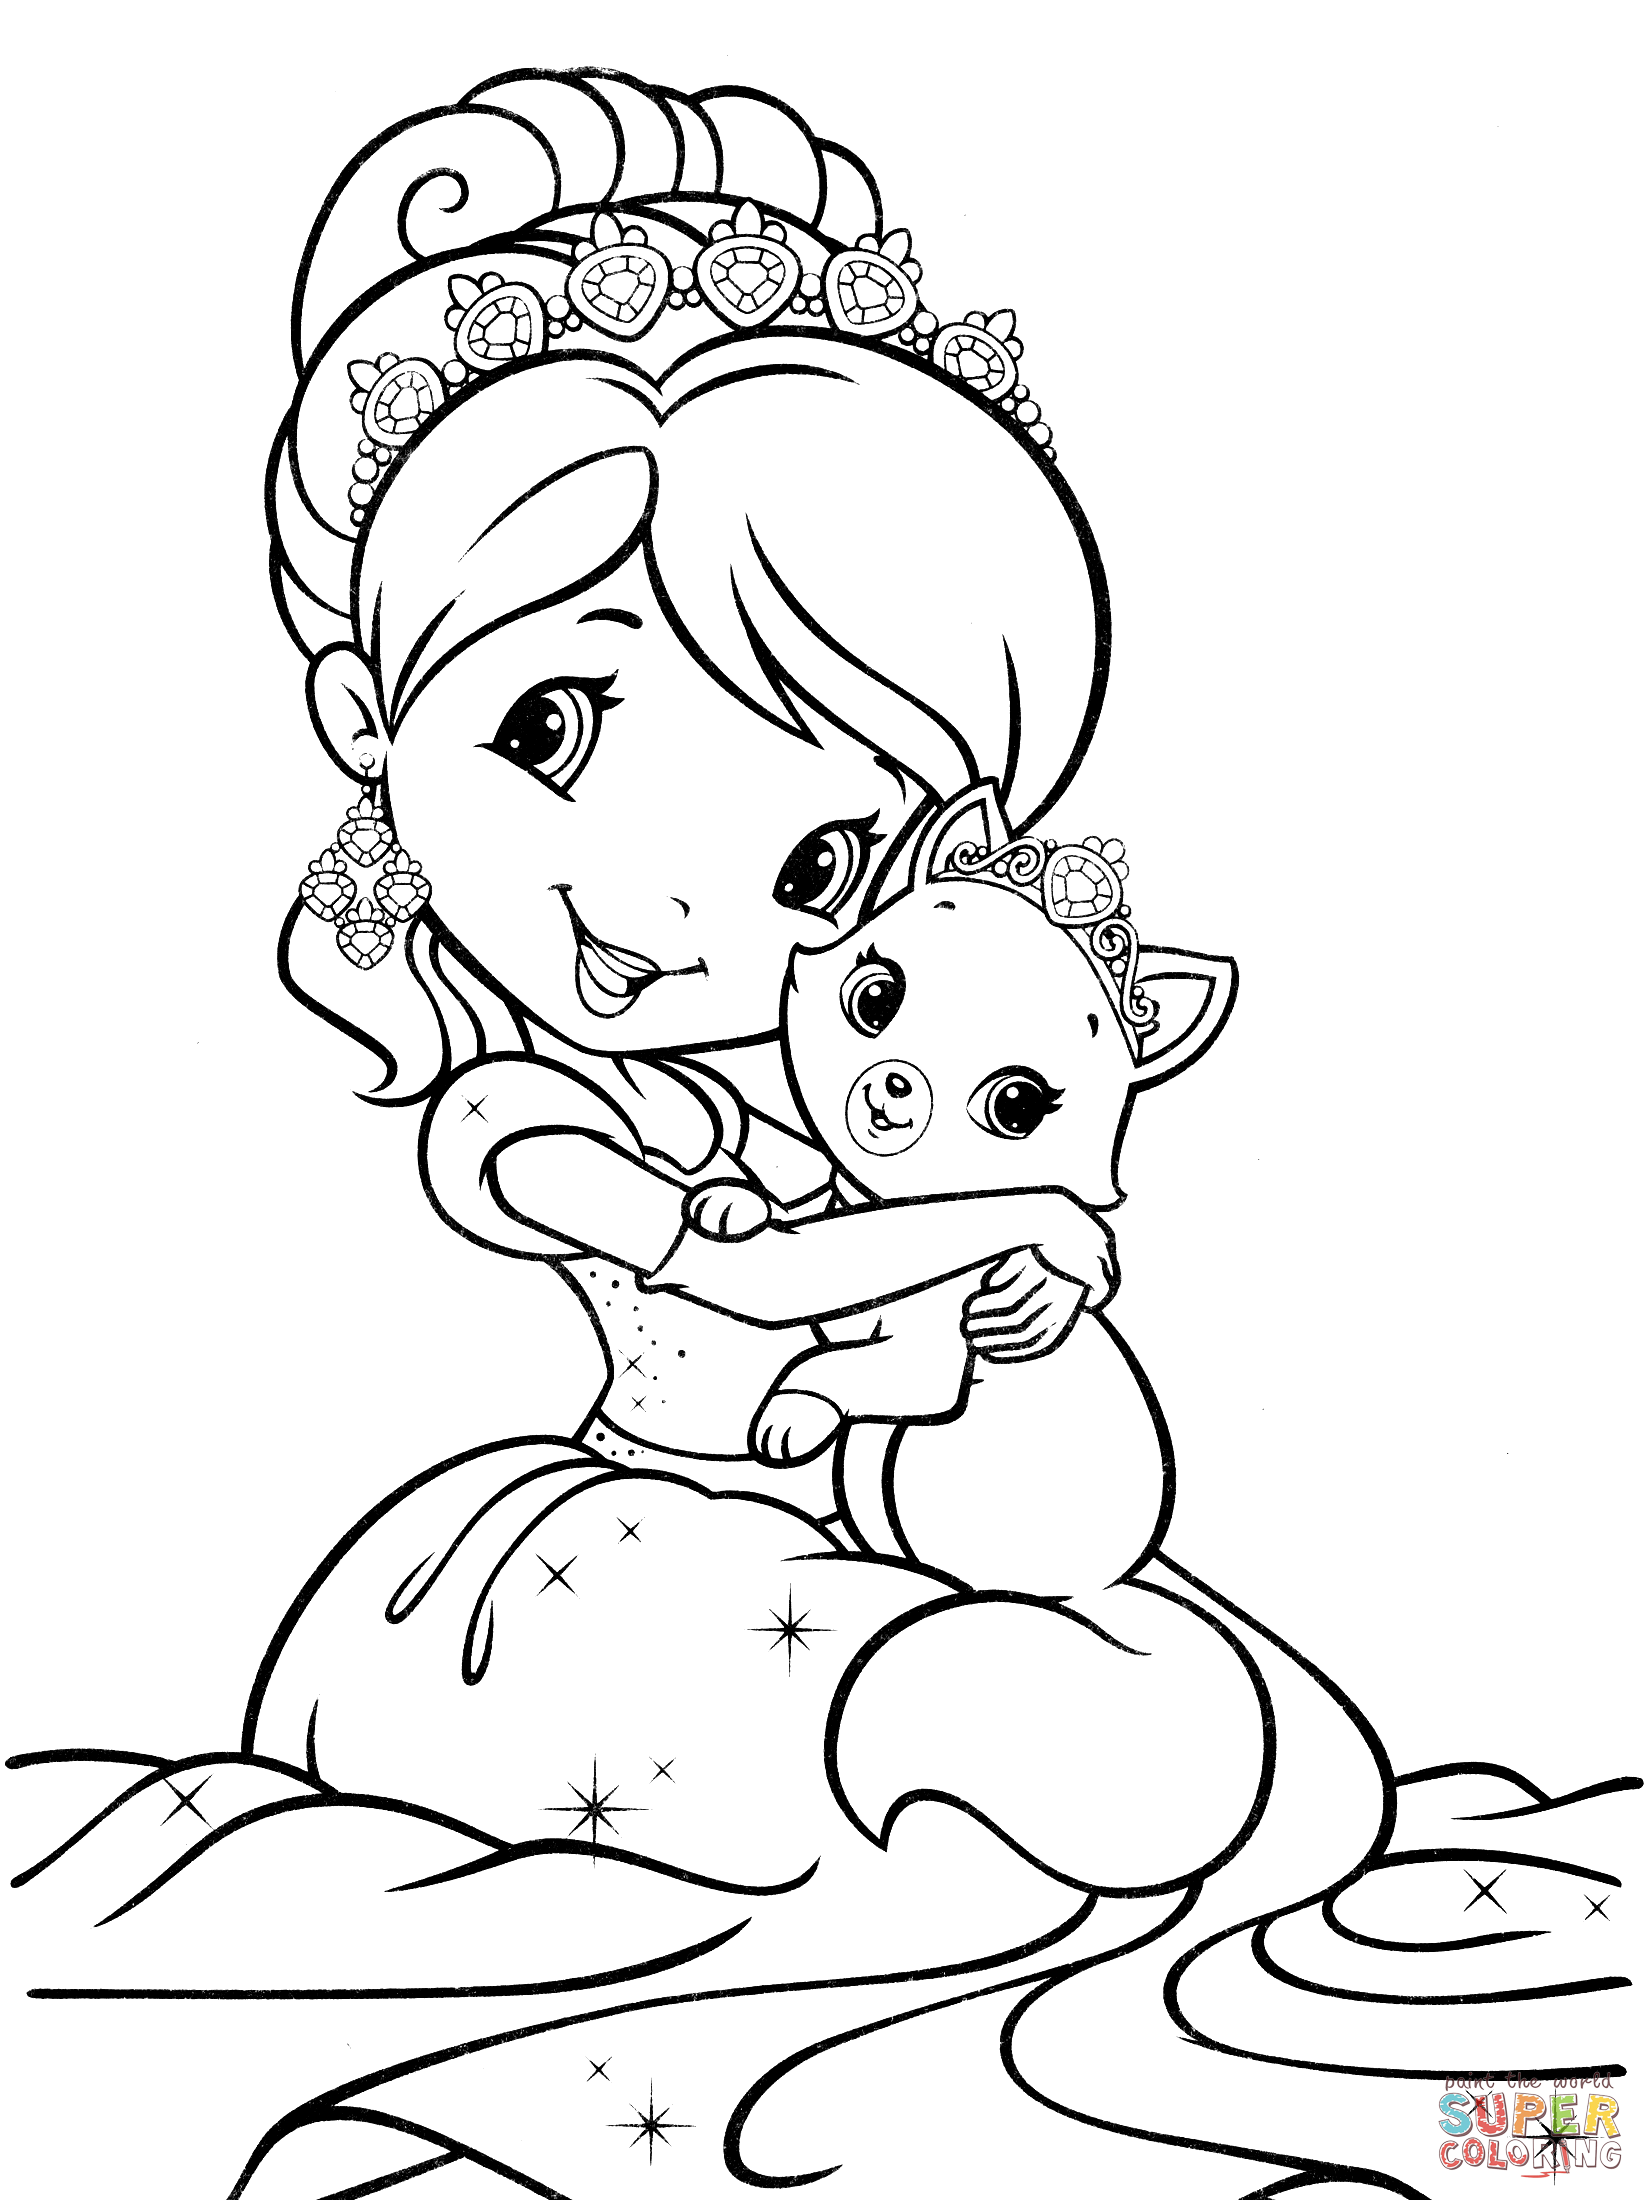 strawberry shortcake coloring games strawberry shortcake coloring pages for kids learning strawberry games shortcake coloring